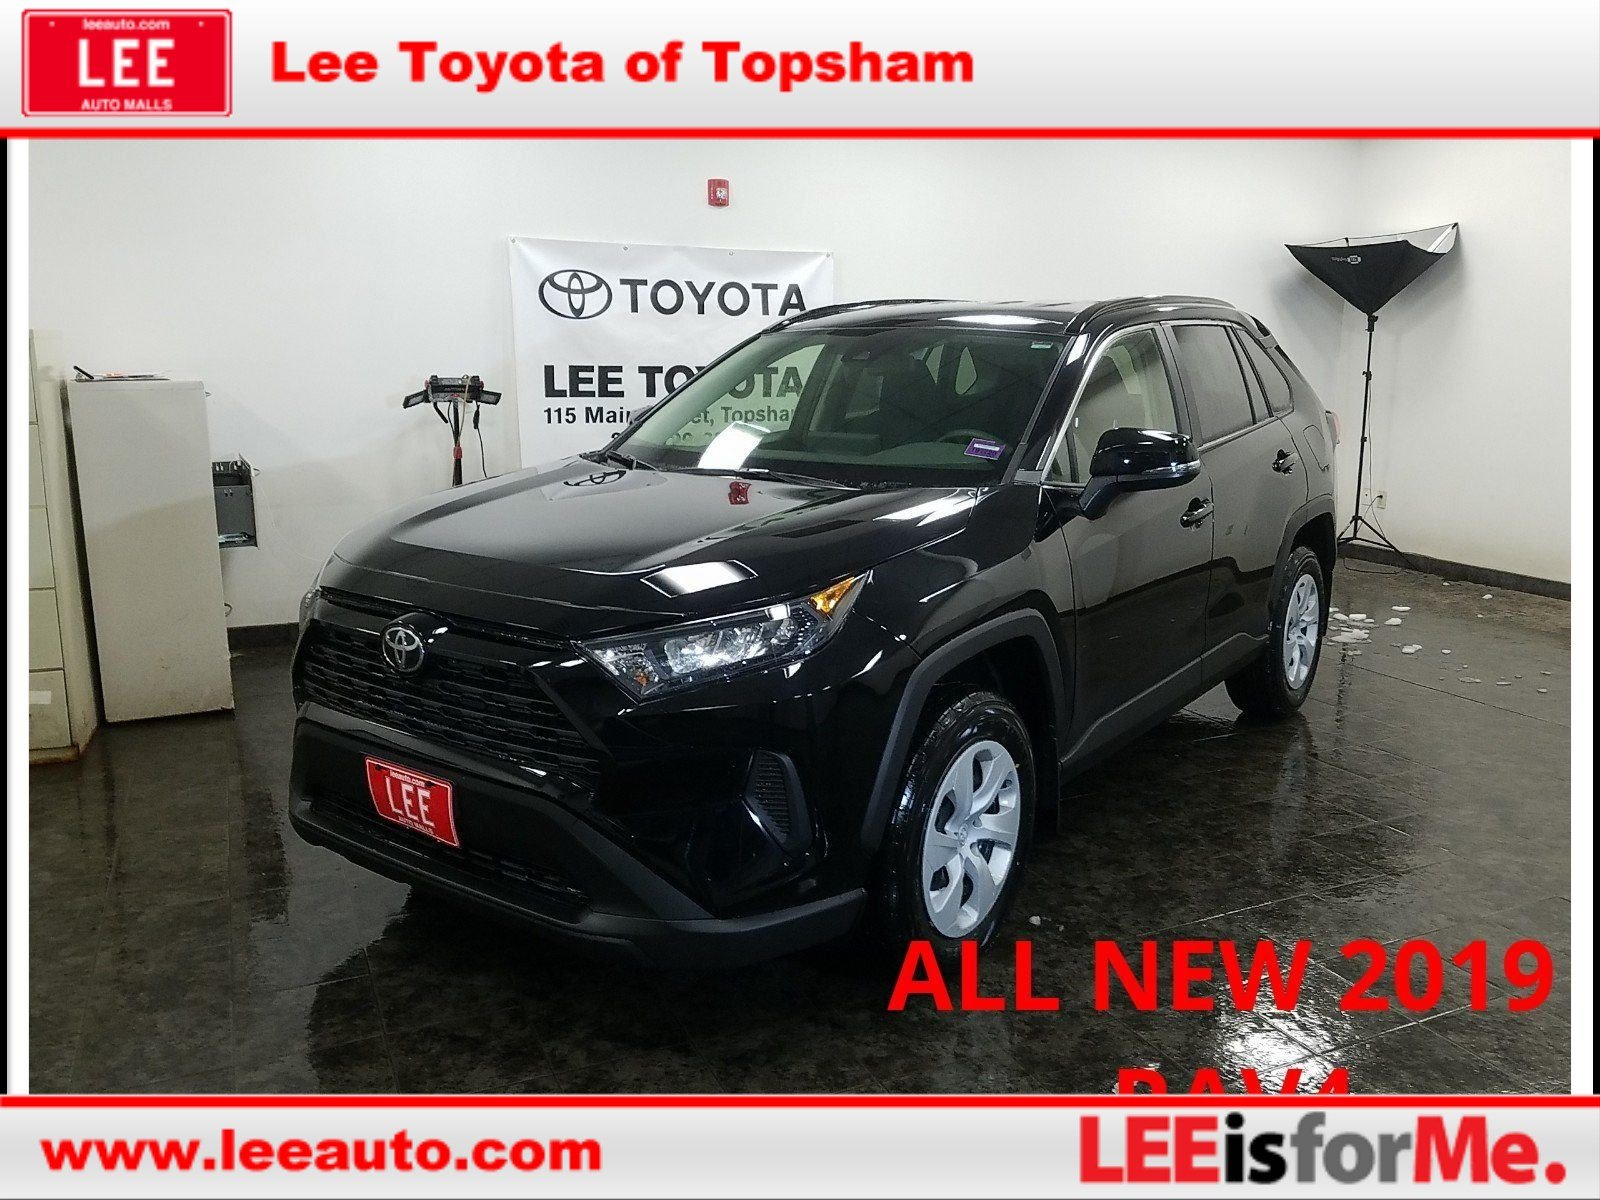 Maine Toyota Dealer Lee Toyota Of Topsham Me New Used Toyota Maine